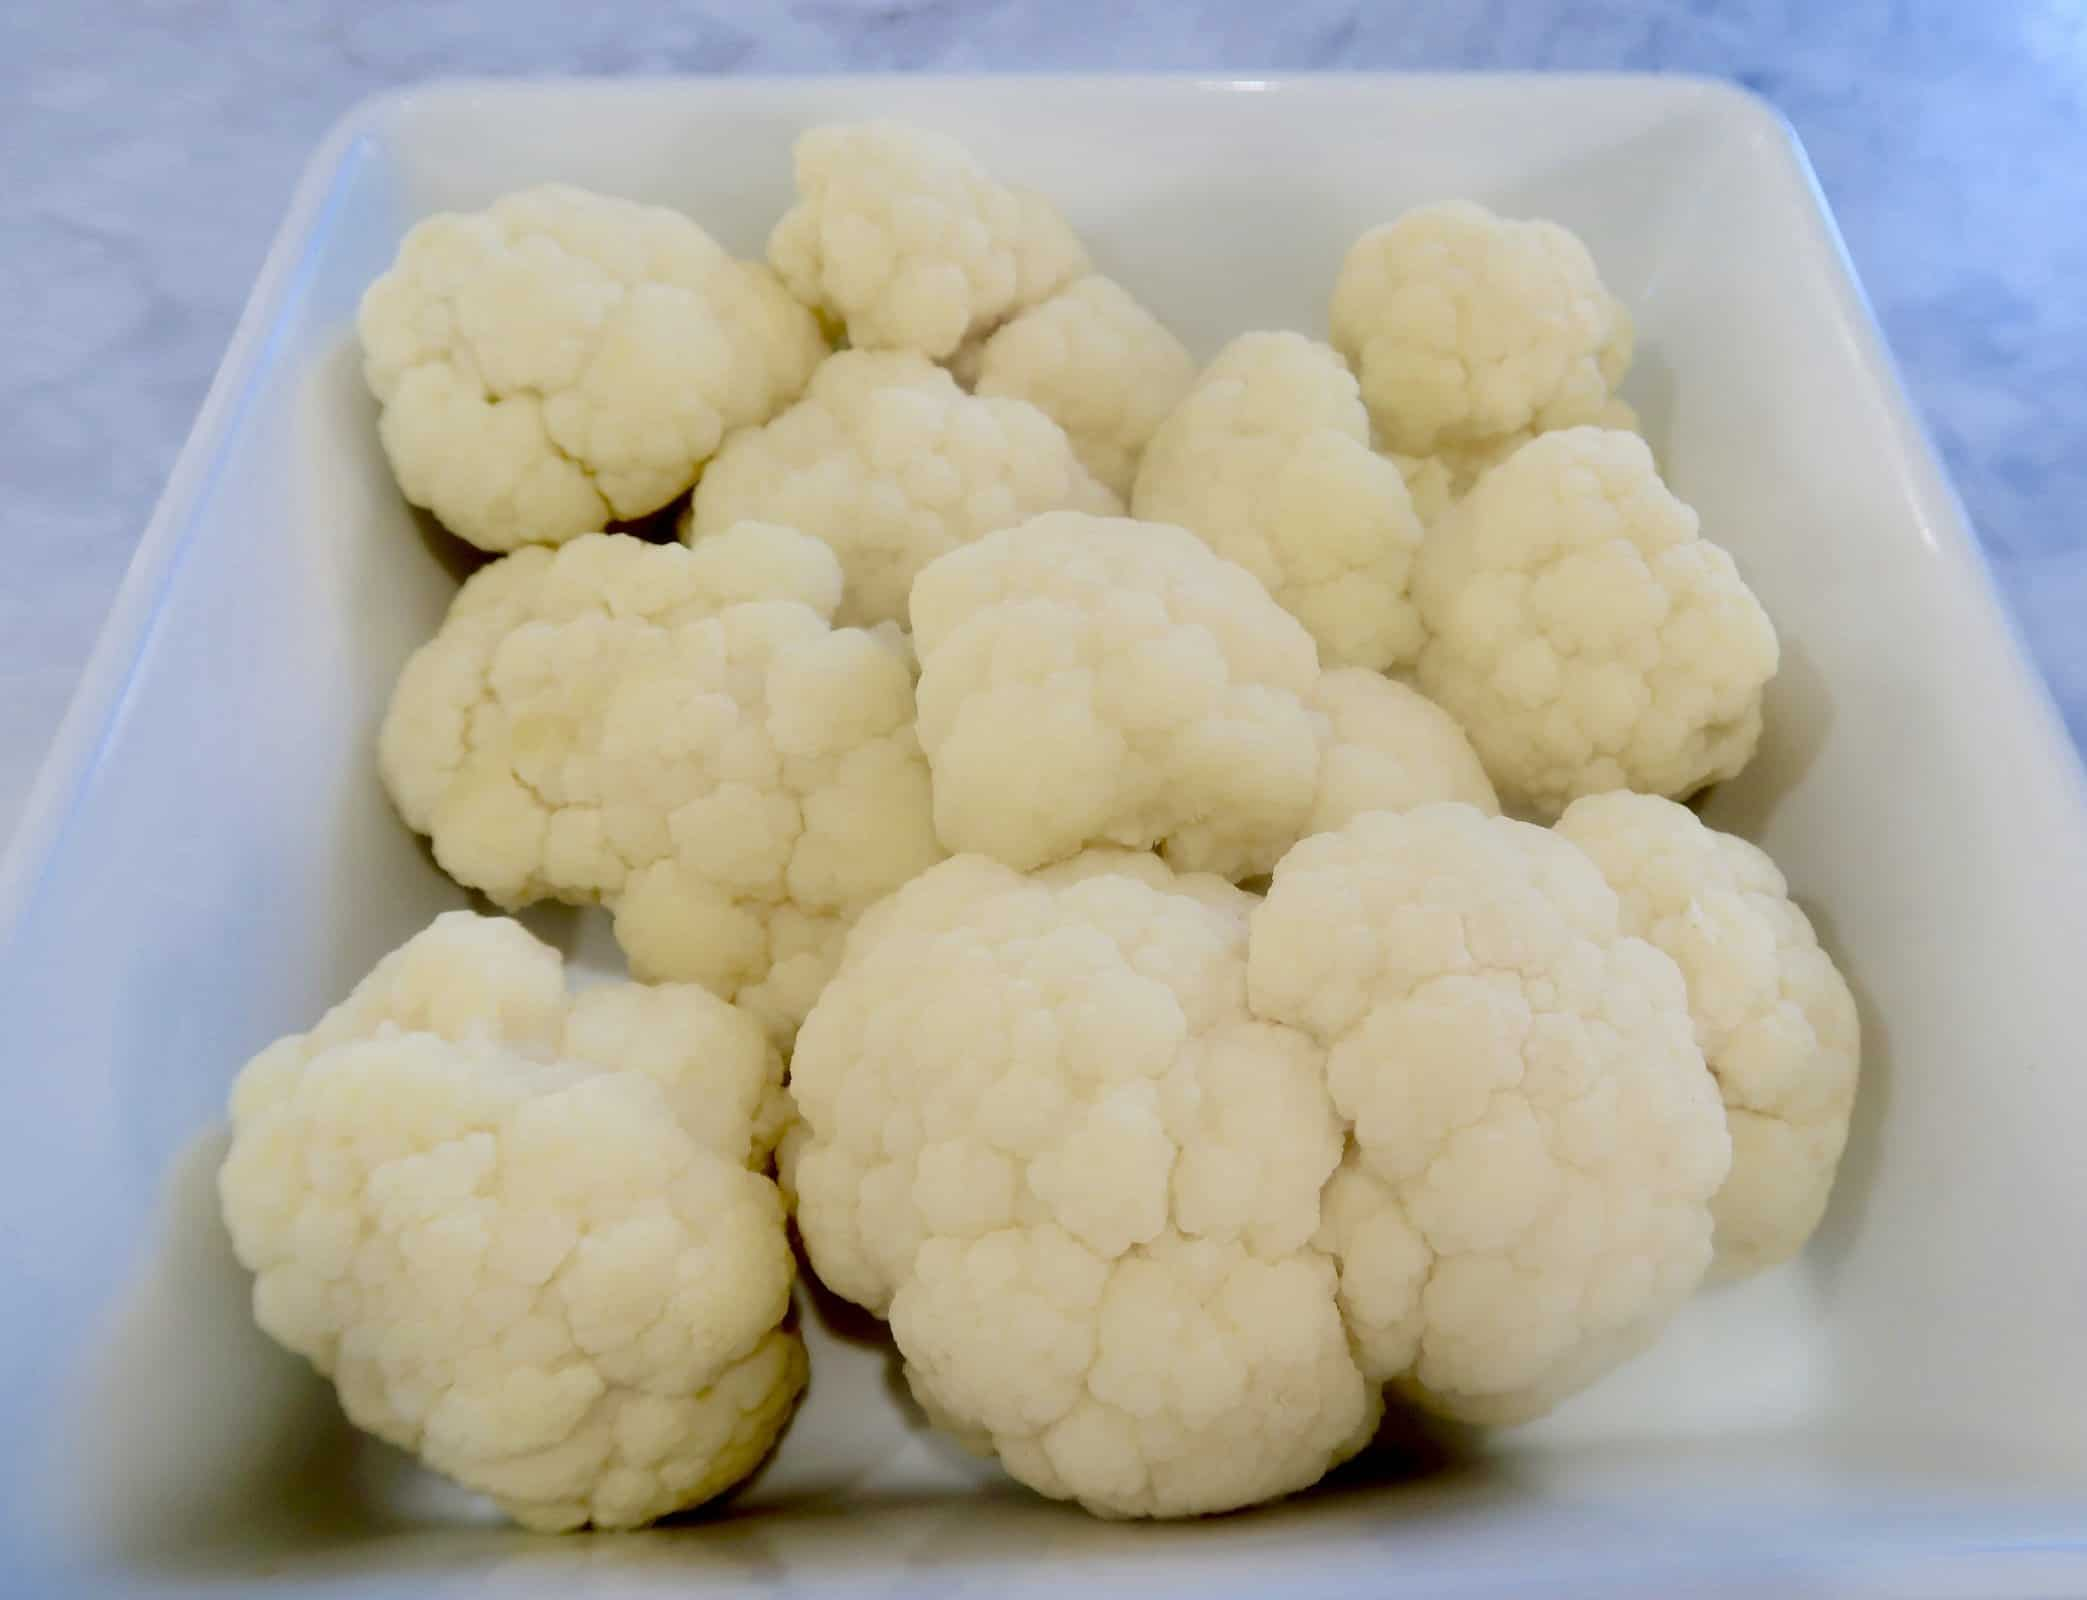 cauliflower with blue cheese gratin steamed florets in white ceramic baking dish